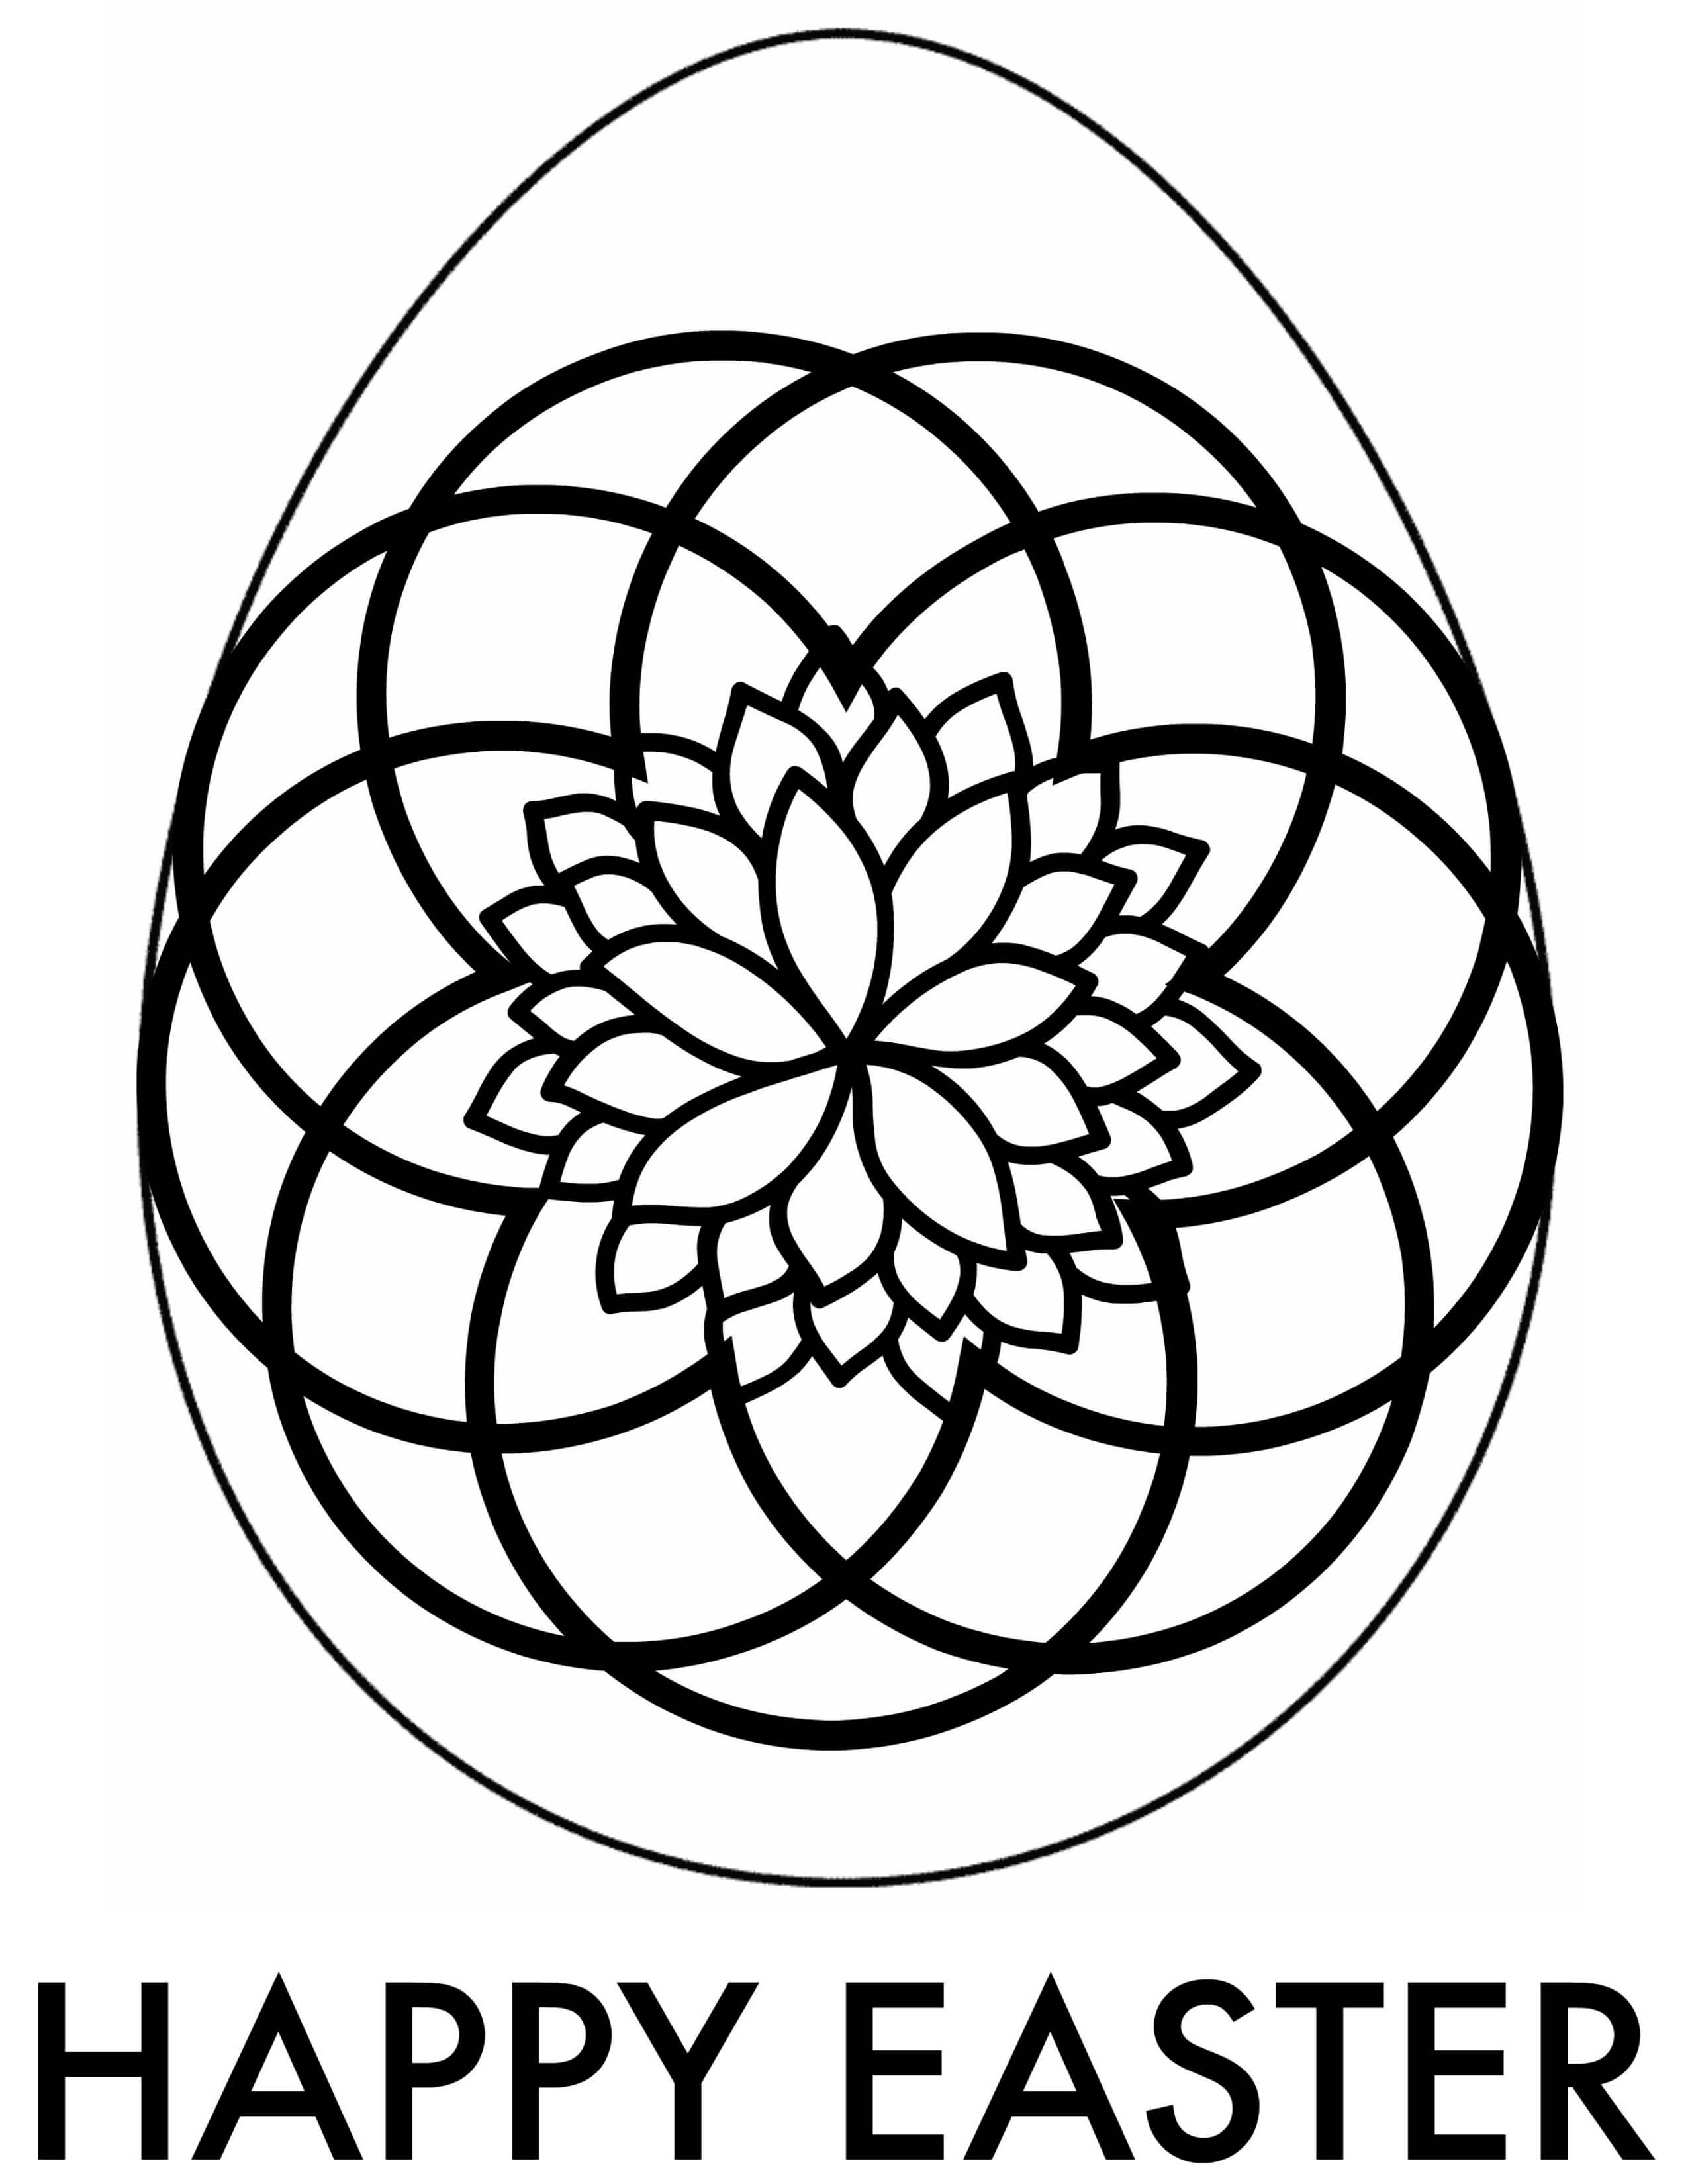 easter eggs coloring page free printable easter egg coloring pages coloring home page eggs easter coloring